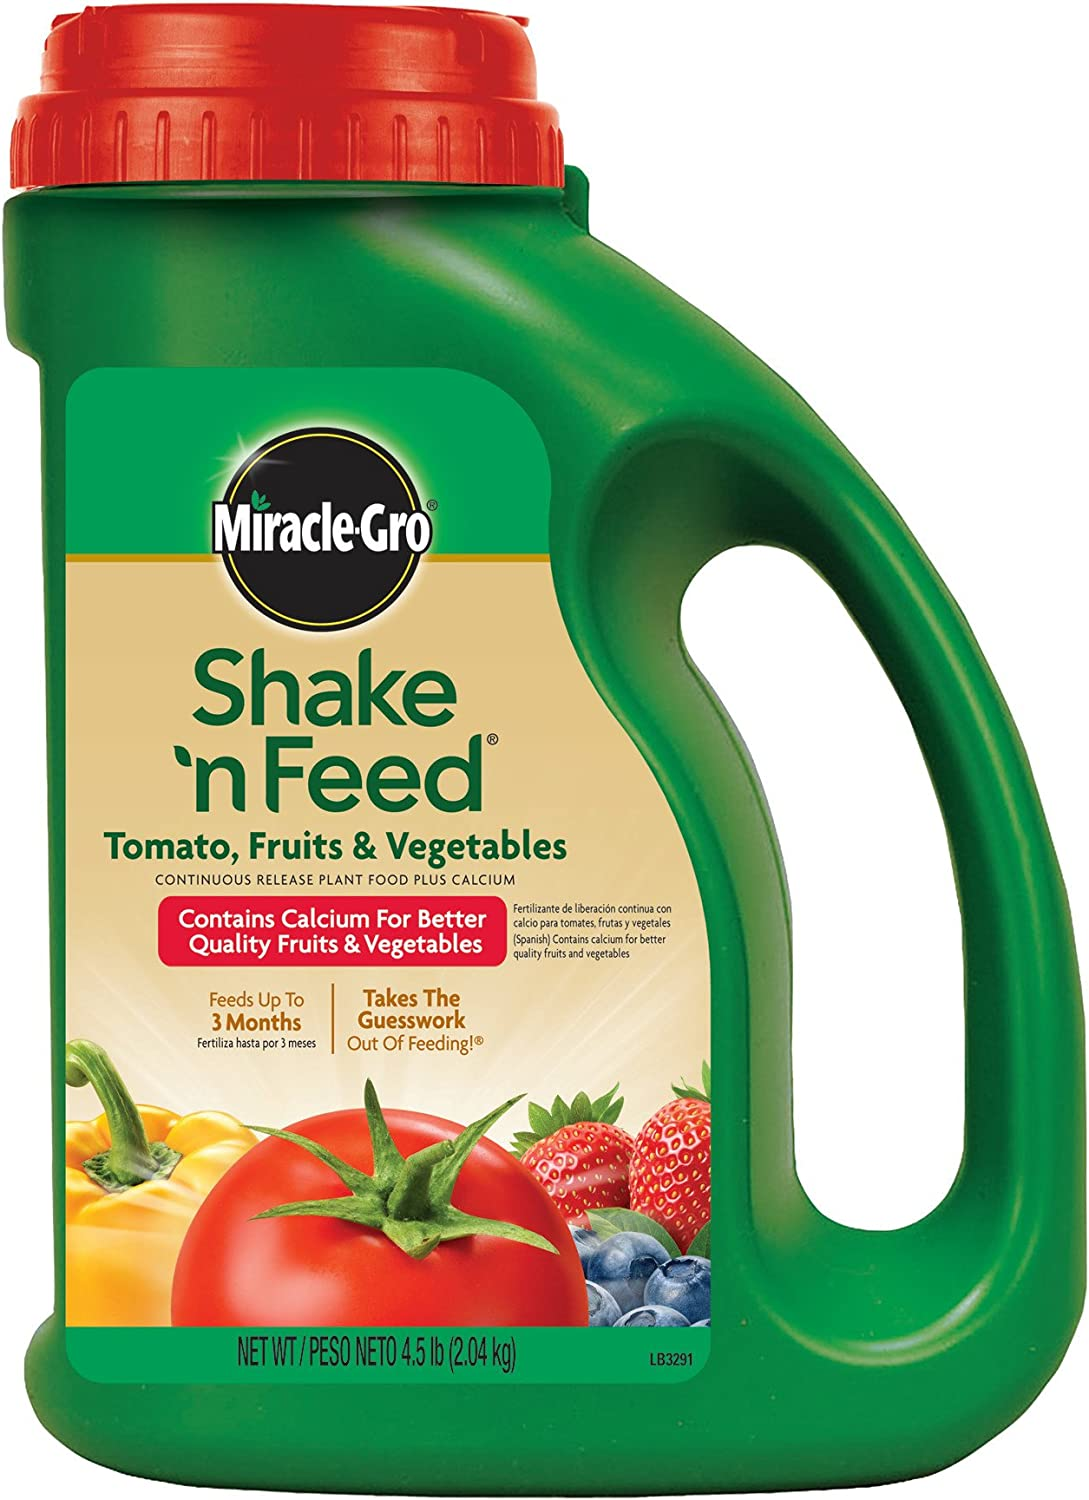 Miracle-Gro Shake 'n Feed Continuous Release Plant Food with Calcium for Tomatoes, Fruits, and Vegetables, 4.5-Pound (Slow Release Plant Fertilizer)